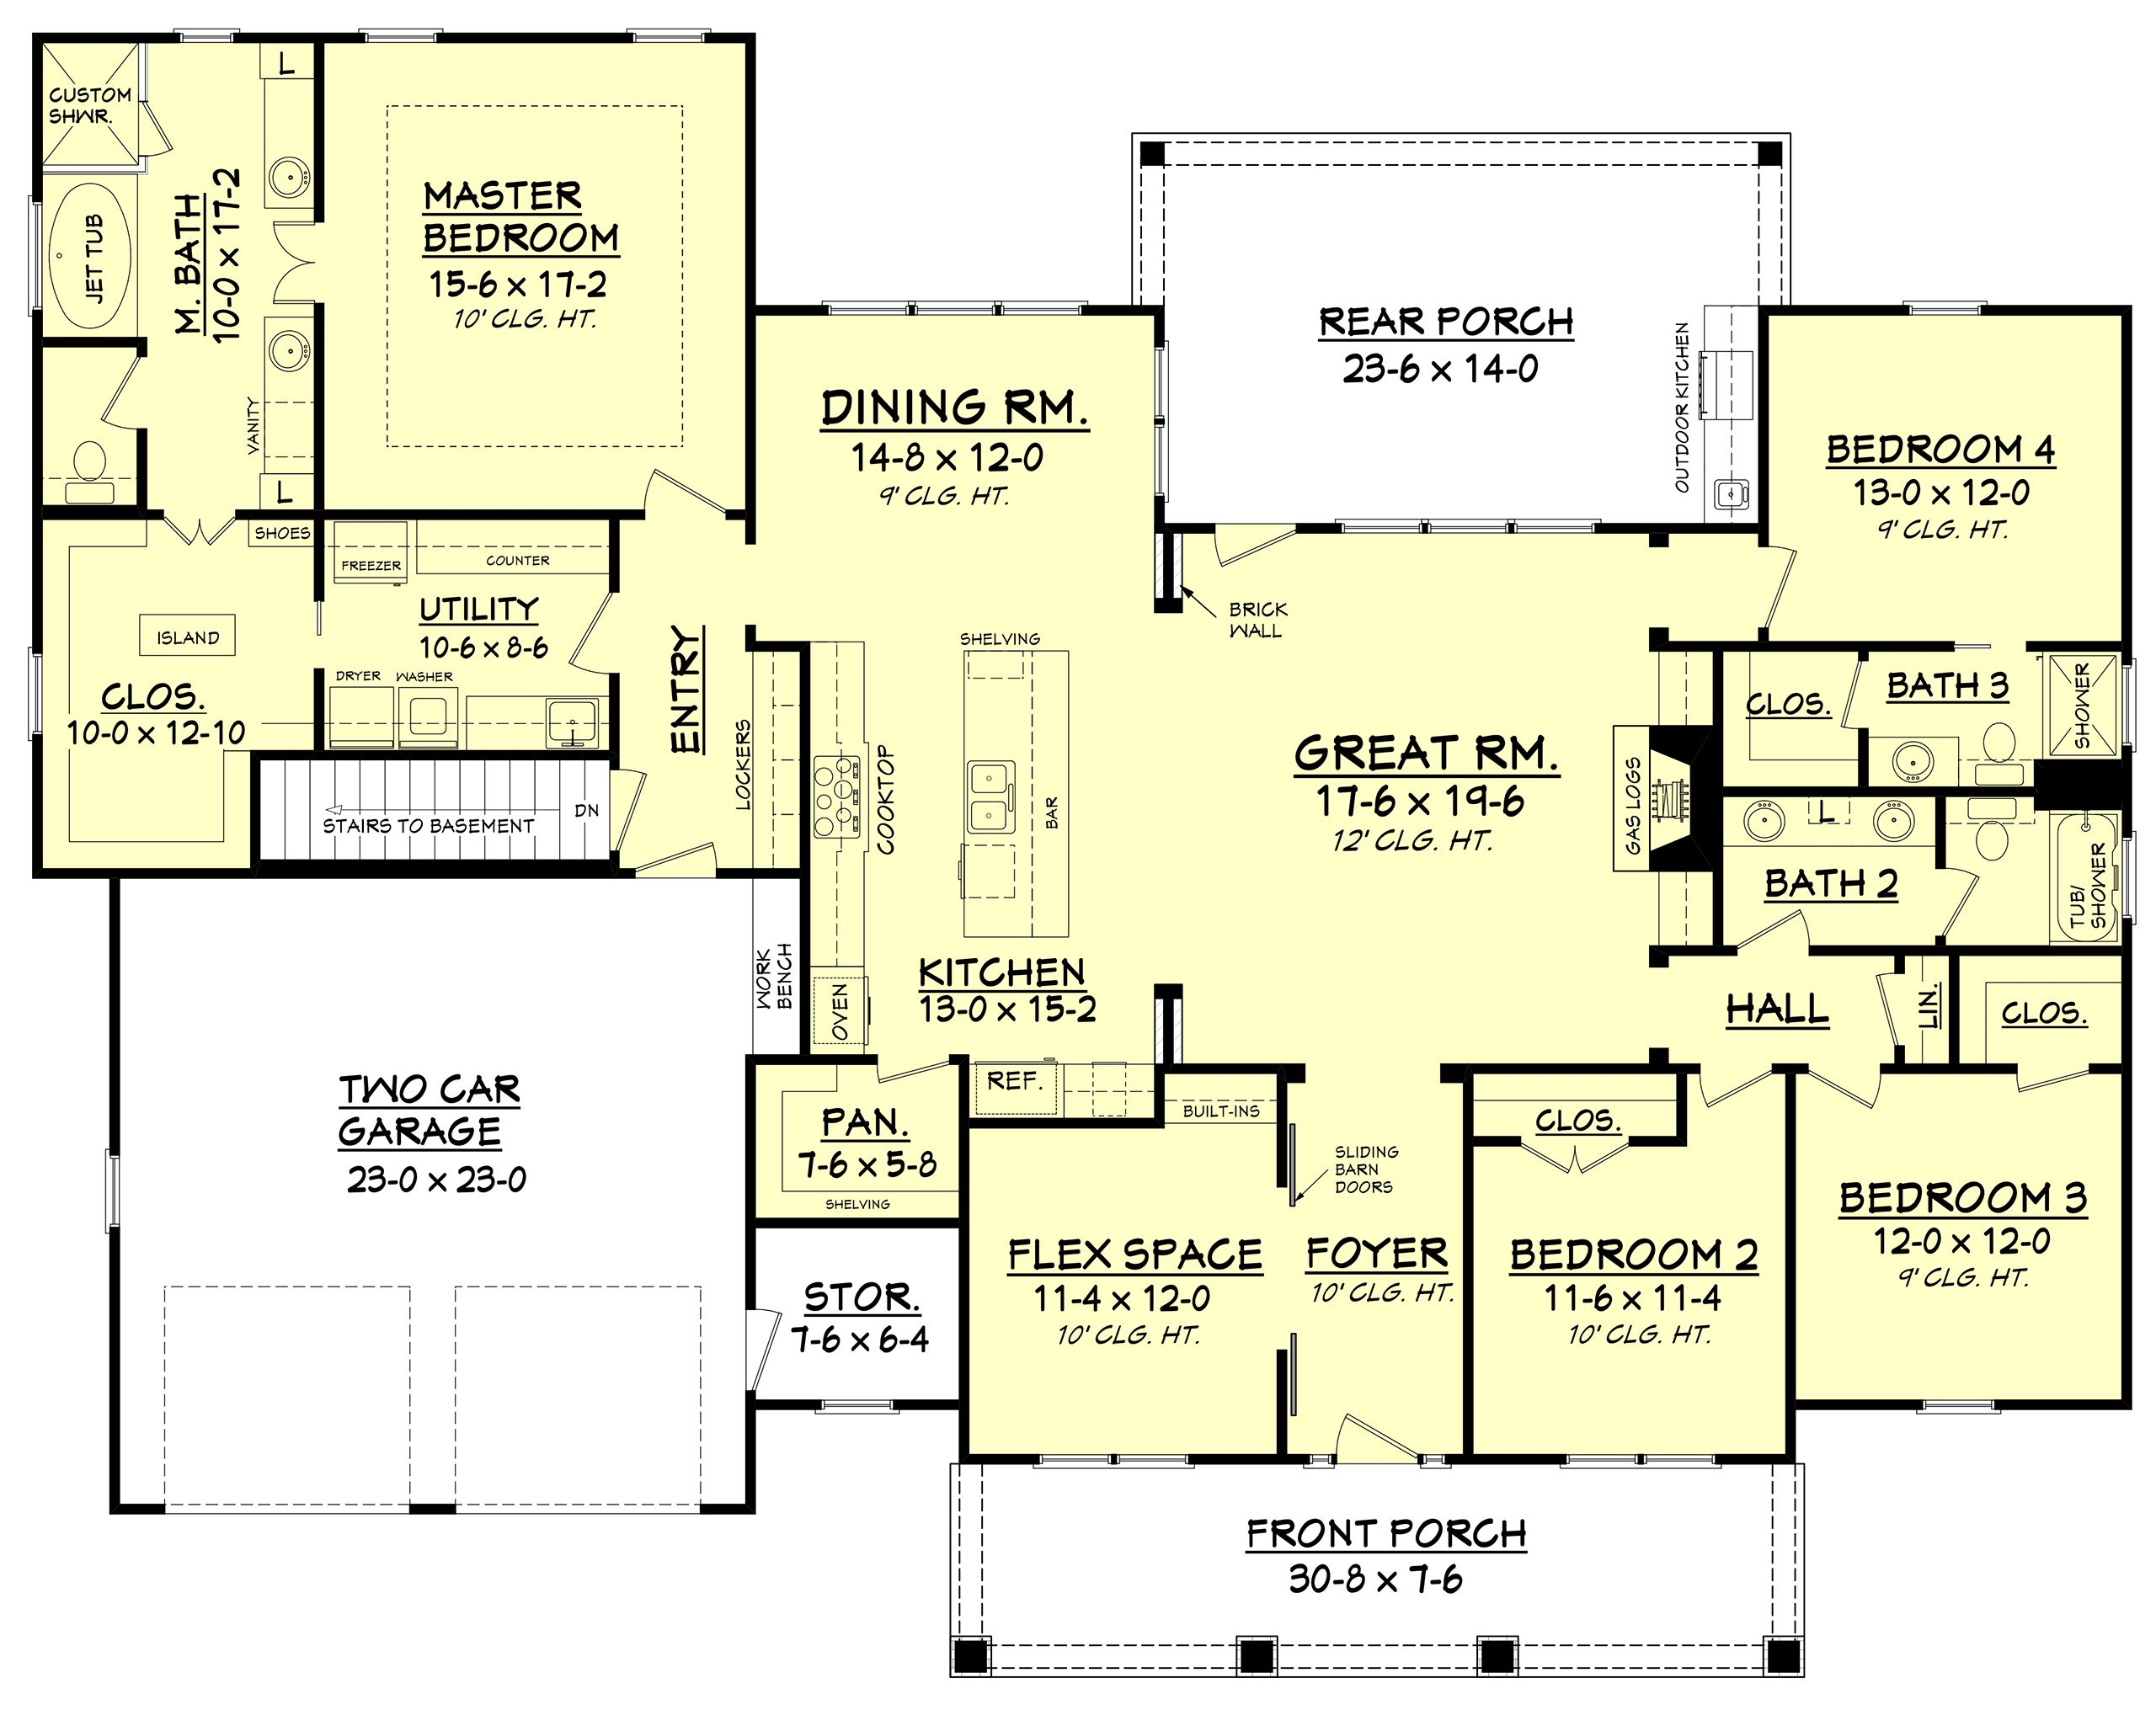 Craftsman style house plan 4 beds 3 baths 2639 sq ft for Main level floor plans